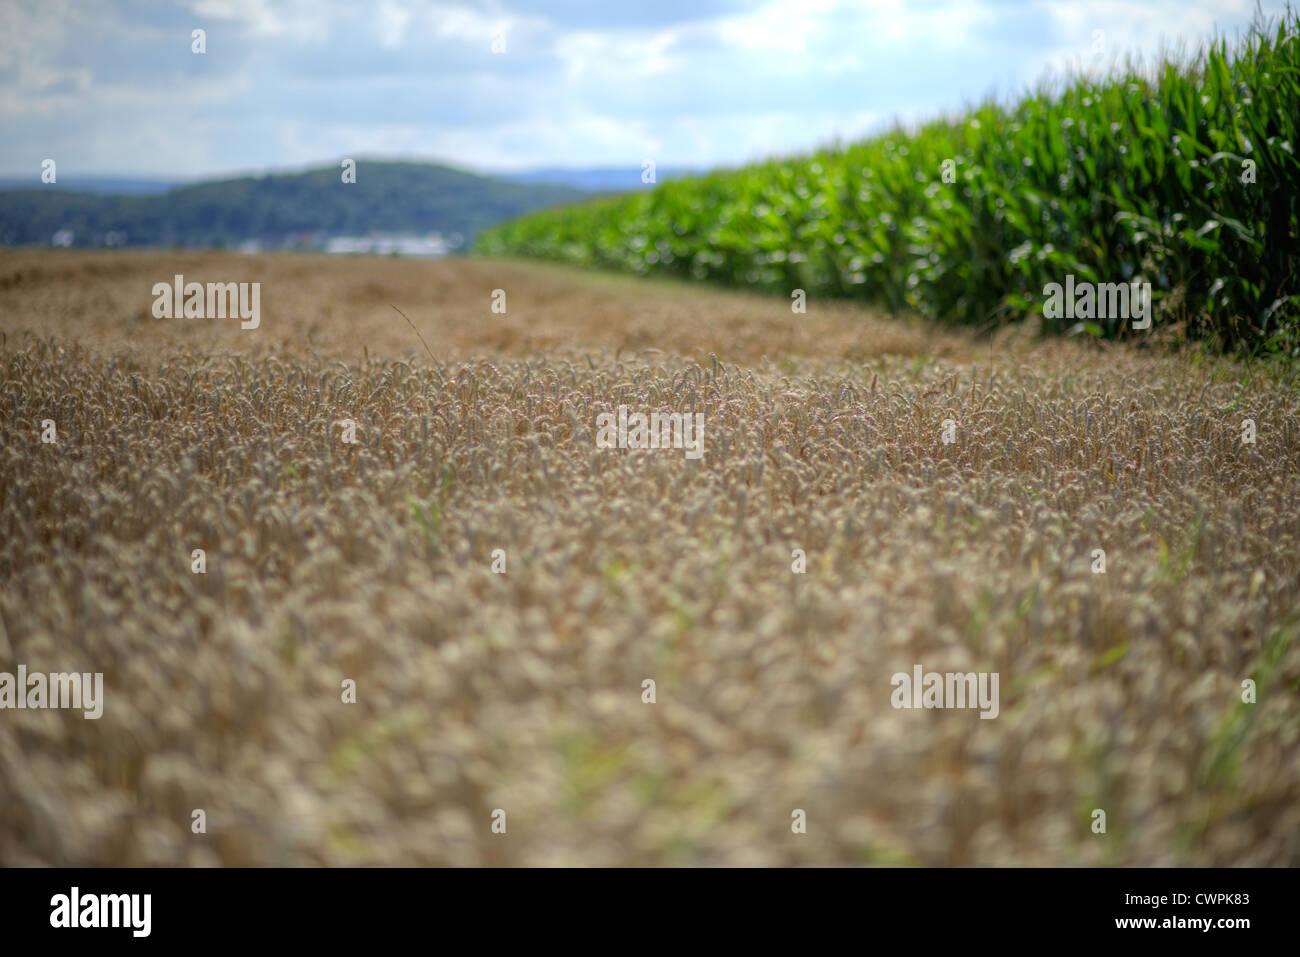 Wheat field, corn field and summer sky - Stock Image